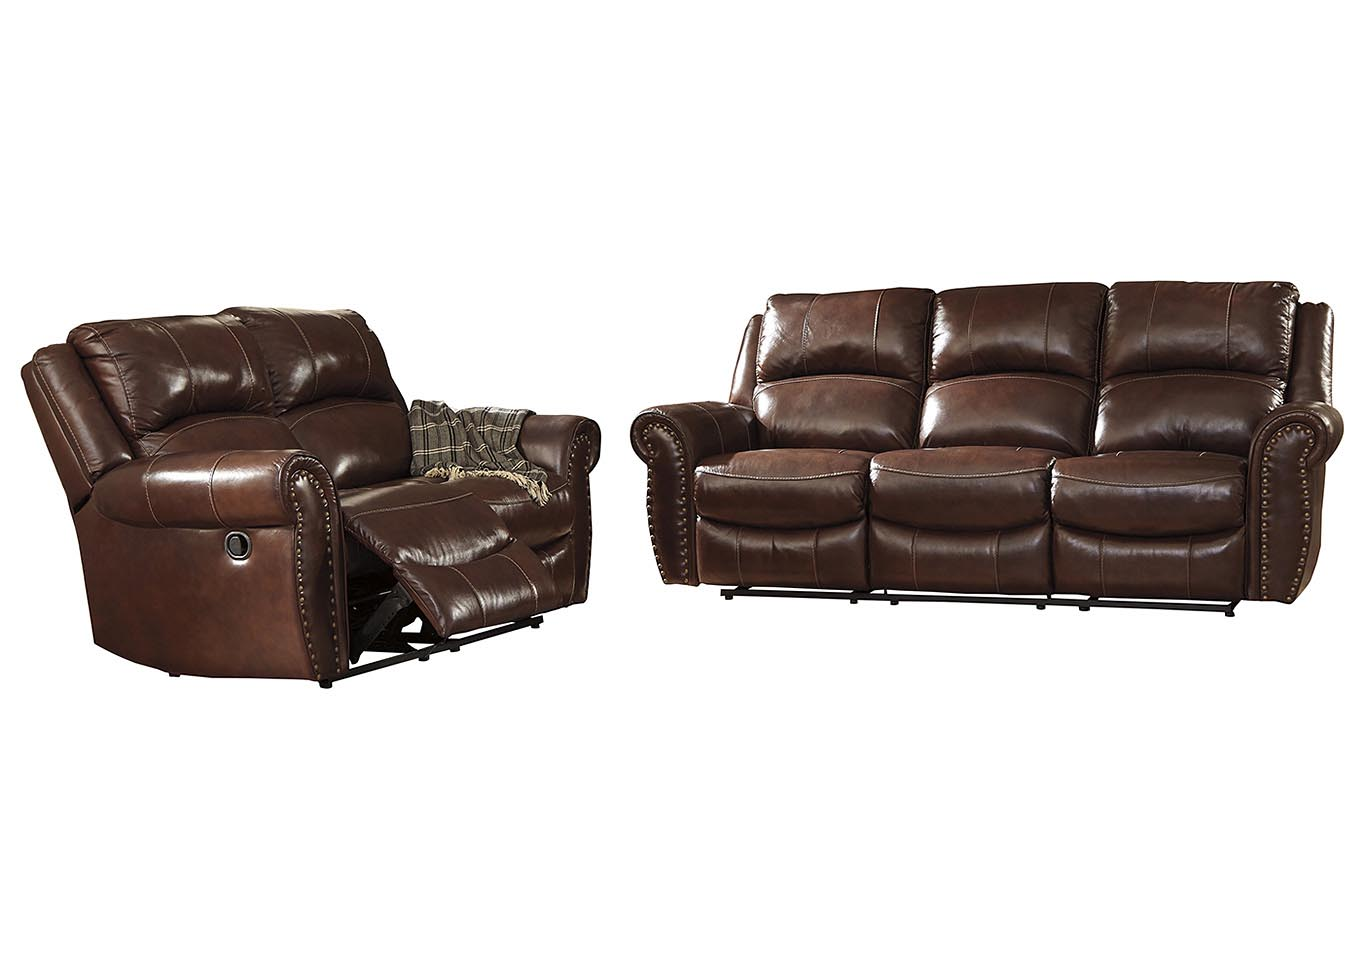 Bingen Harness Reclining Sofa & Loveseat,Signature Design By Ashley